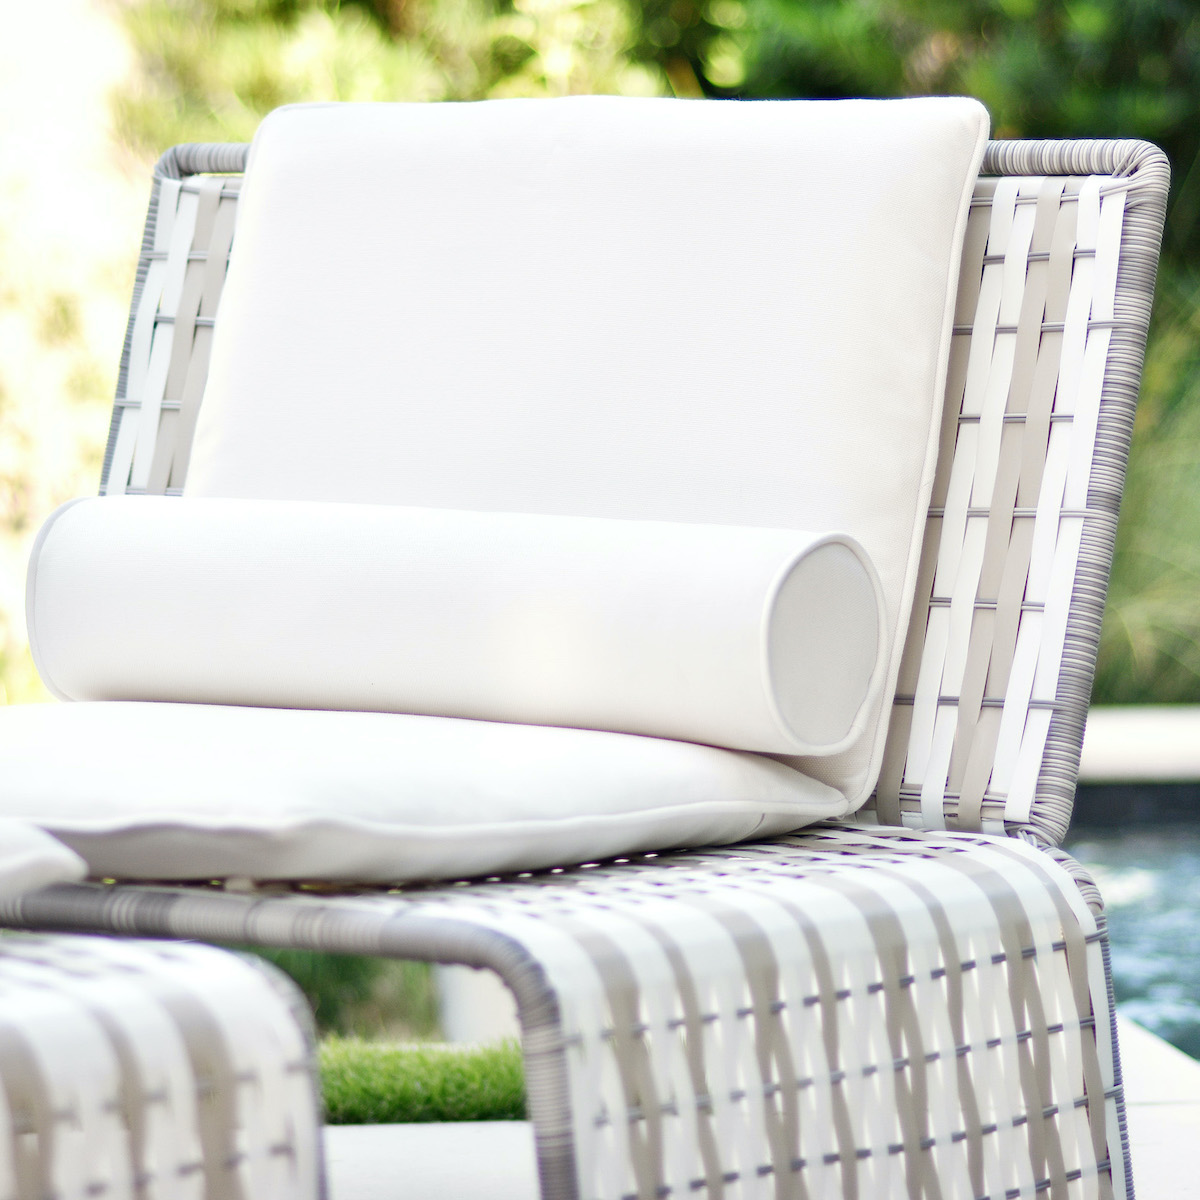 stori modern tabloid lounge chair and ottoman in white by the pool